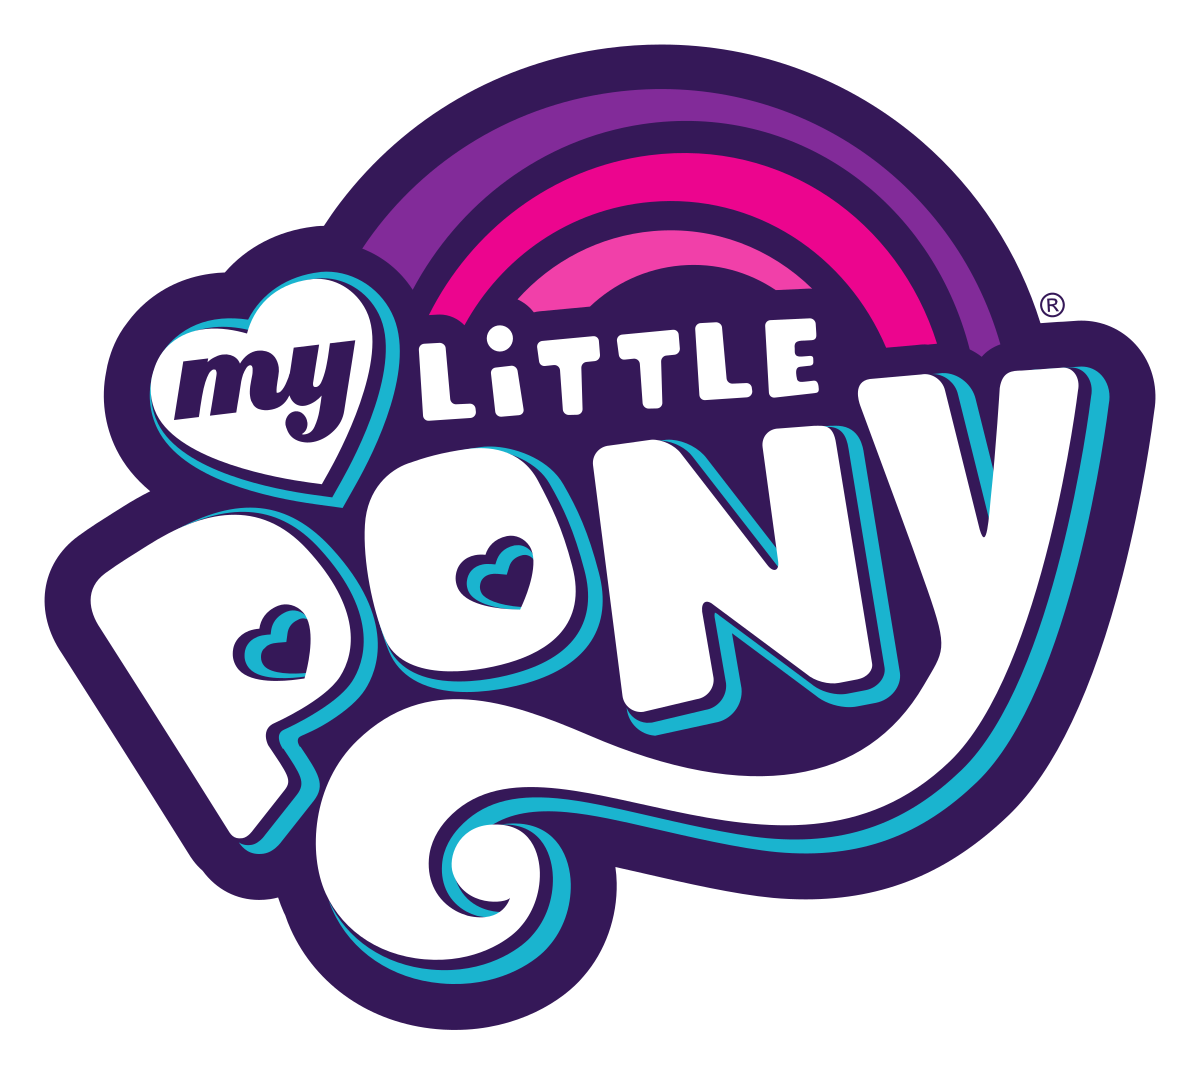 Dead clipart guidebook. My little pony toyline